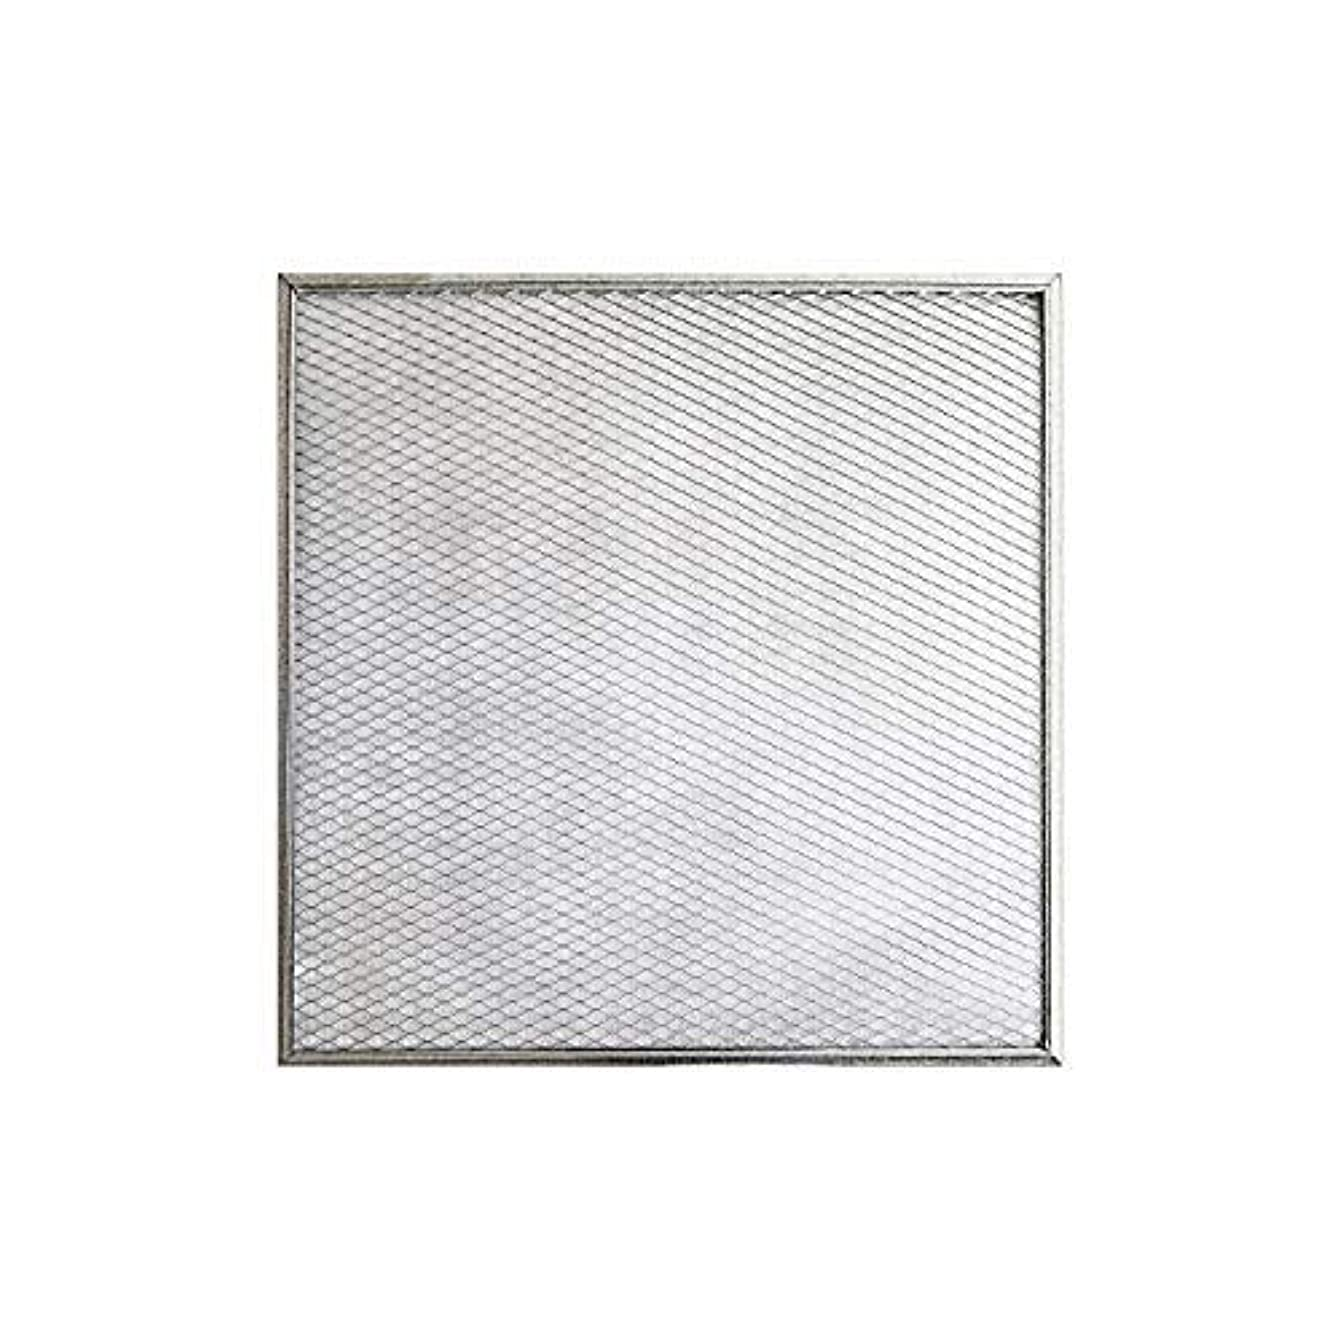 12x36x1 Lifetime Air Filter - Electrostatic Washable Permanent A/C Silver Steel Frame 65% more efficiency